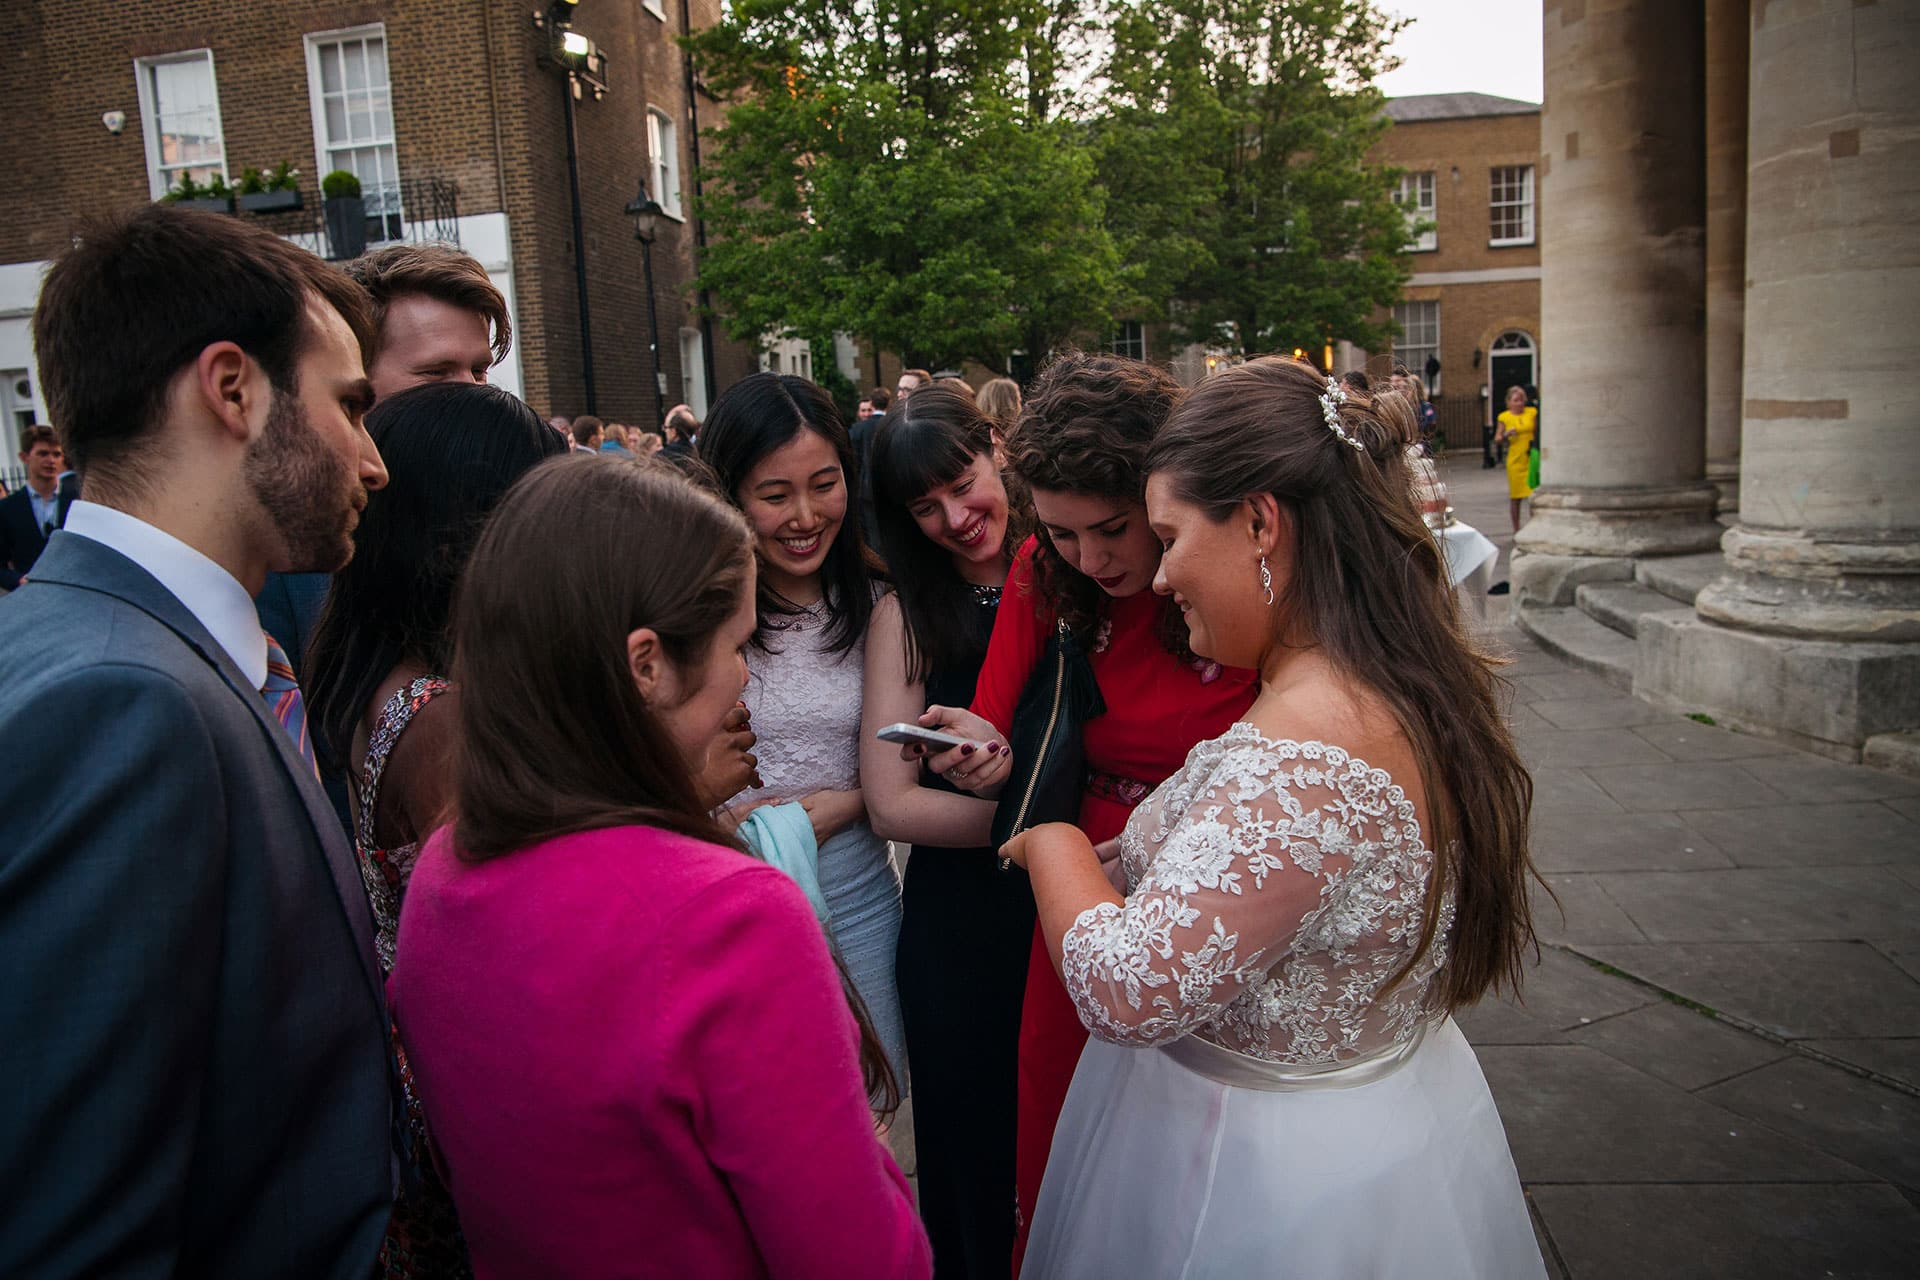 guests admire the brides wedding ring on the piazza outside